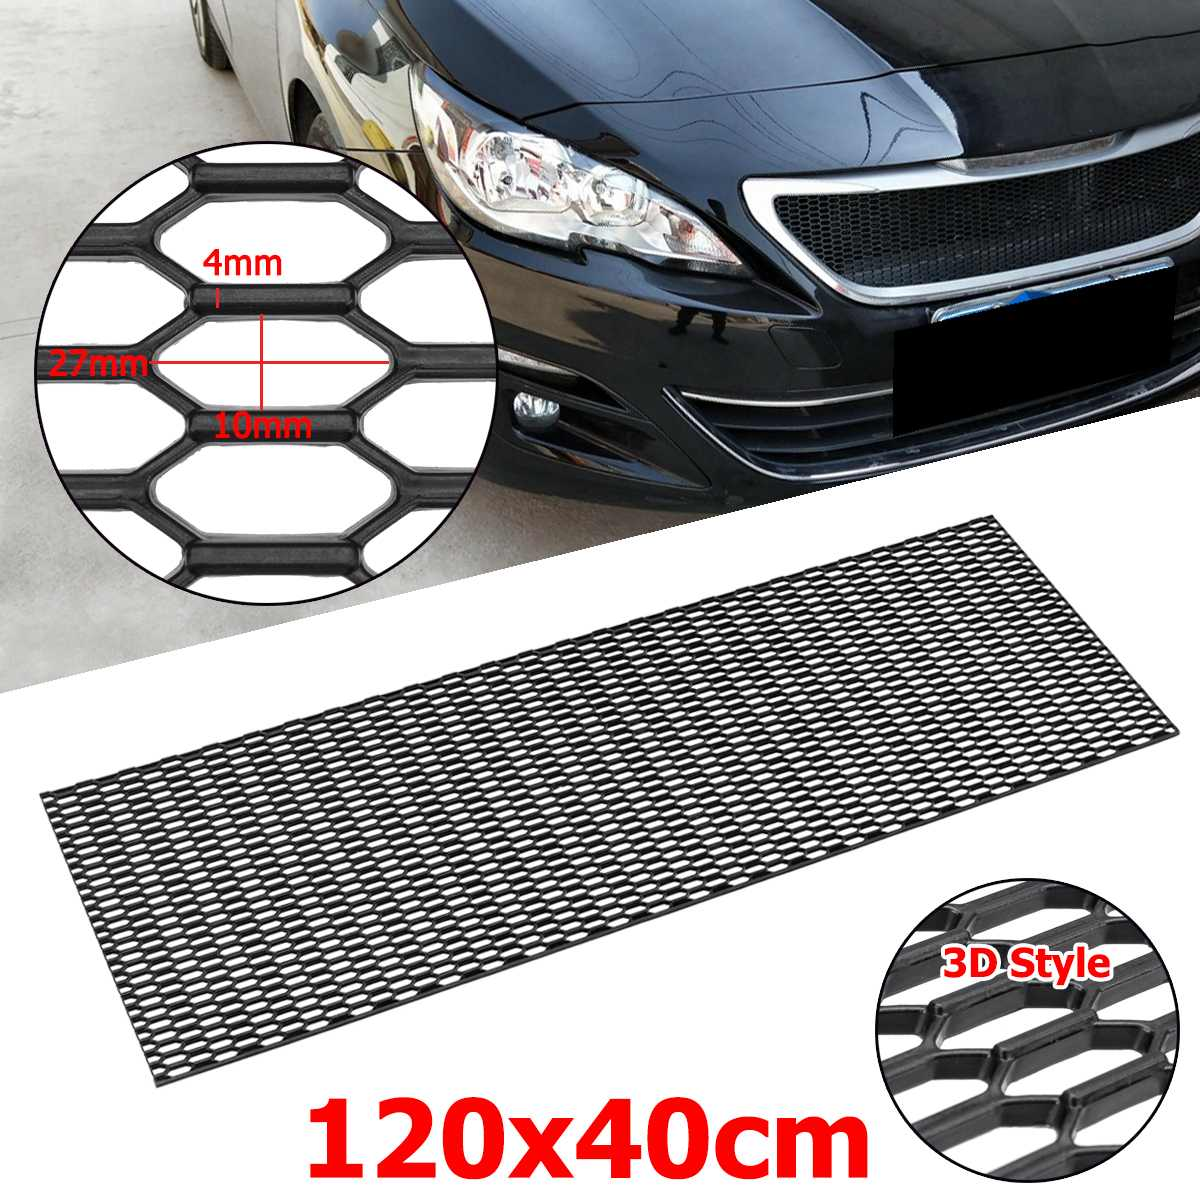 120cm Universal Racing Honeycomb Mesh Grill Bumper Vent Car Styling Air Intake Meshed Grille For Benz for Audi120cm Universal Racing Honeycomb Mesh Grill Bumper Vent Car Styling Air Intake Meshed Grille For Benz for Audi